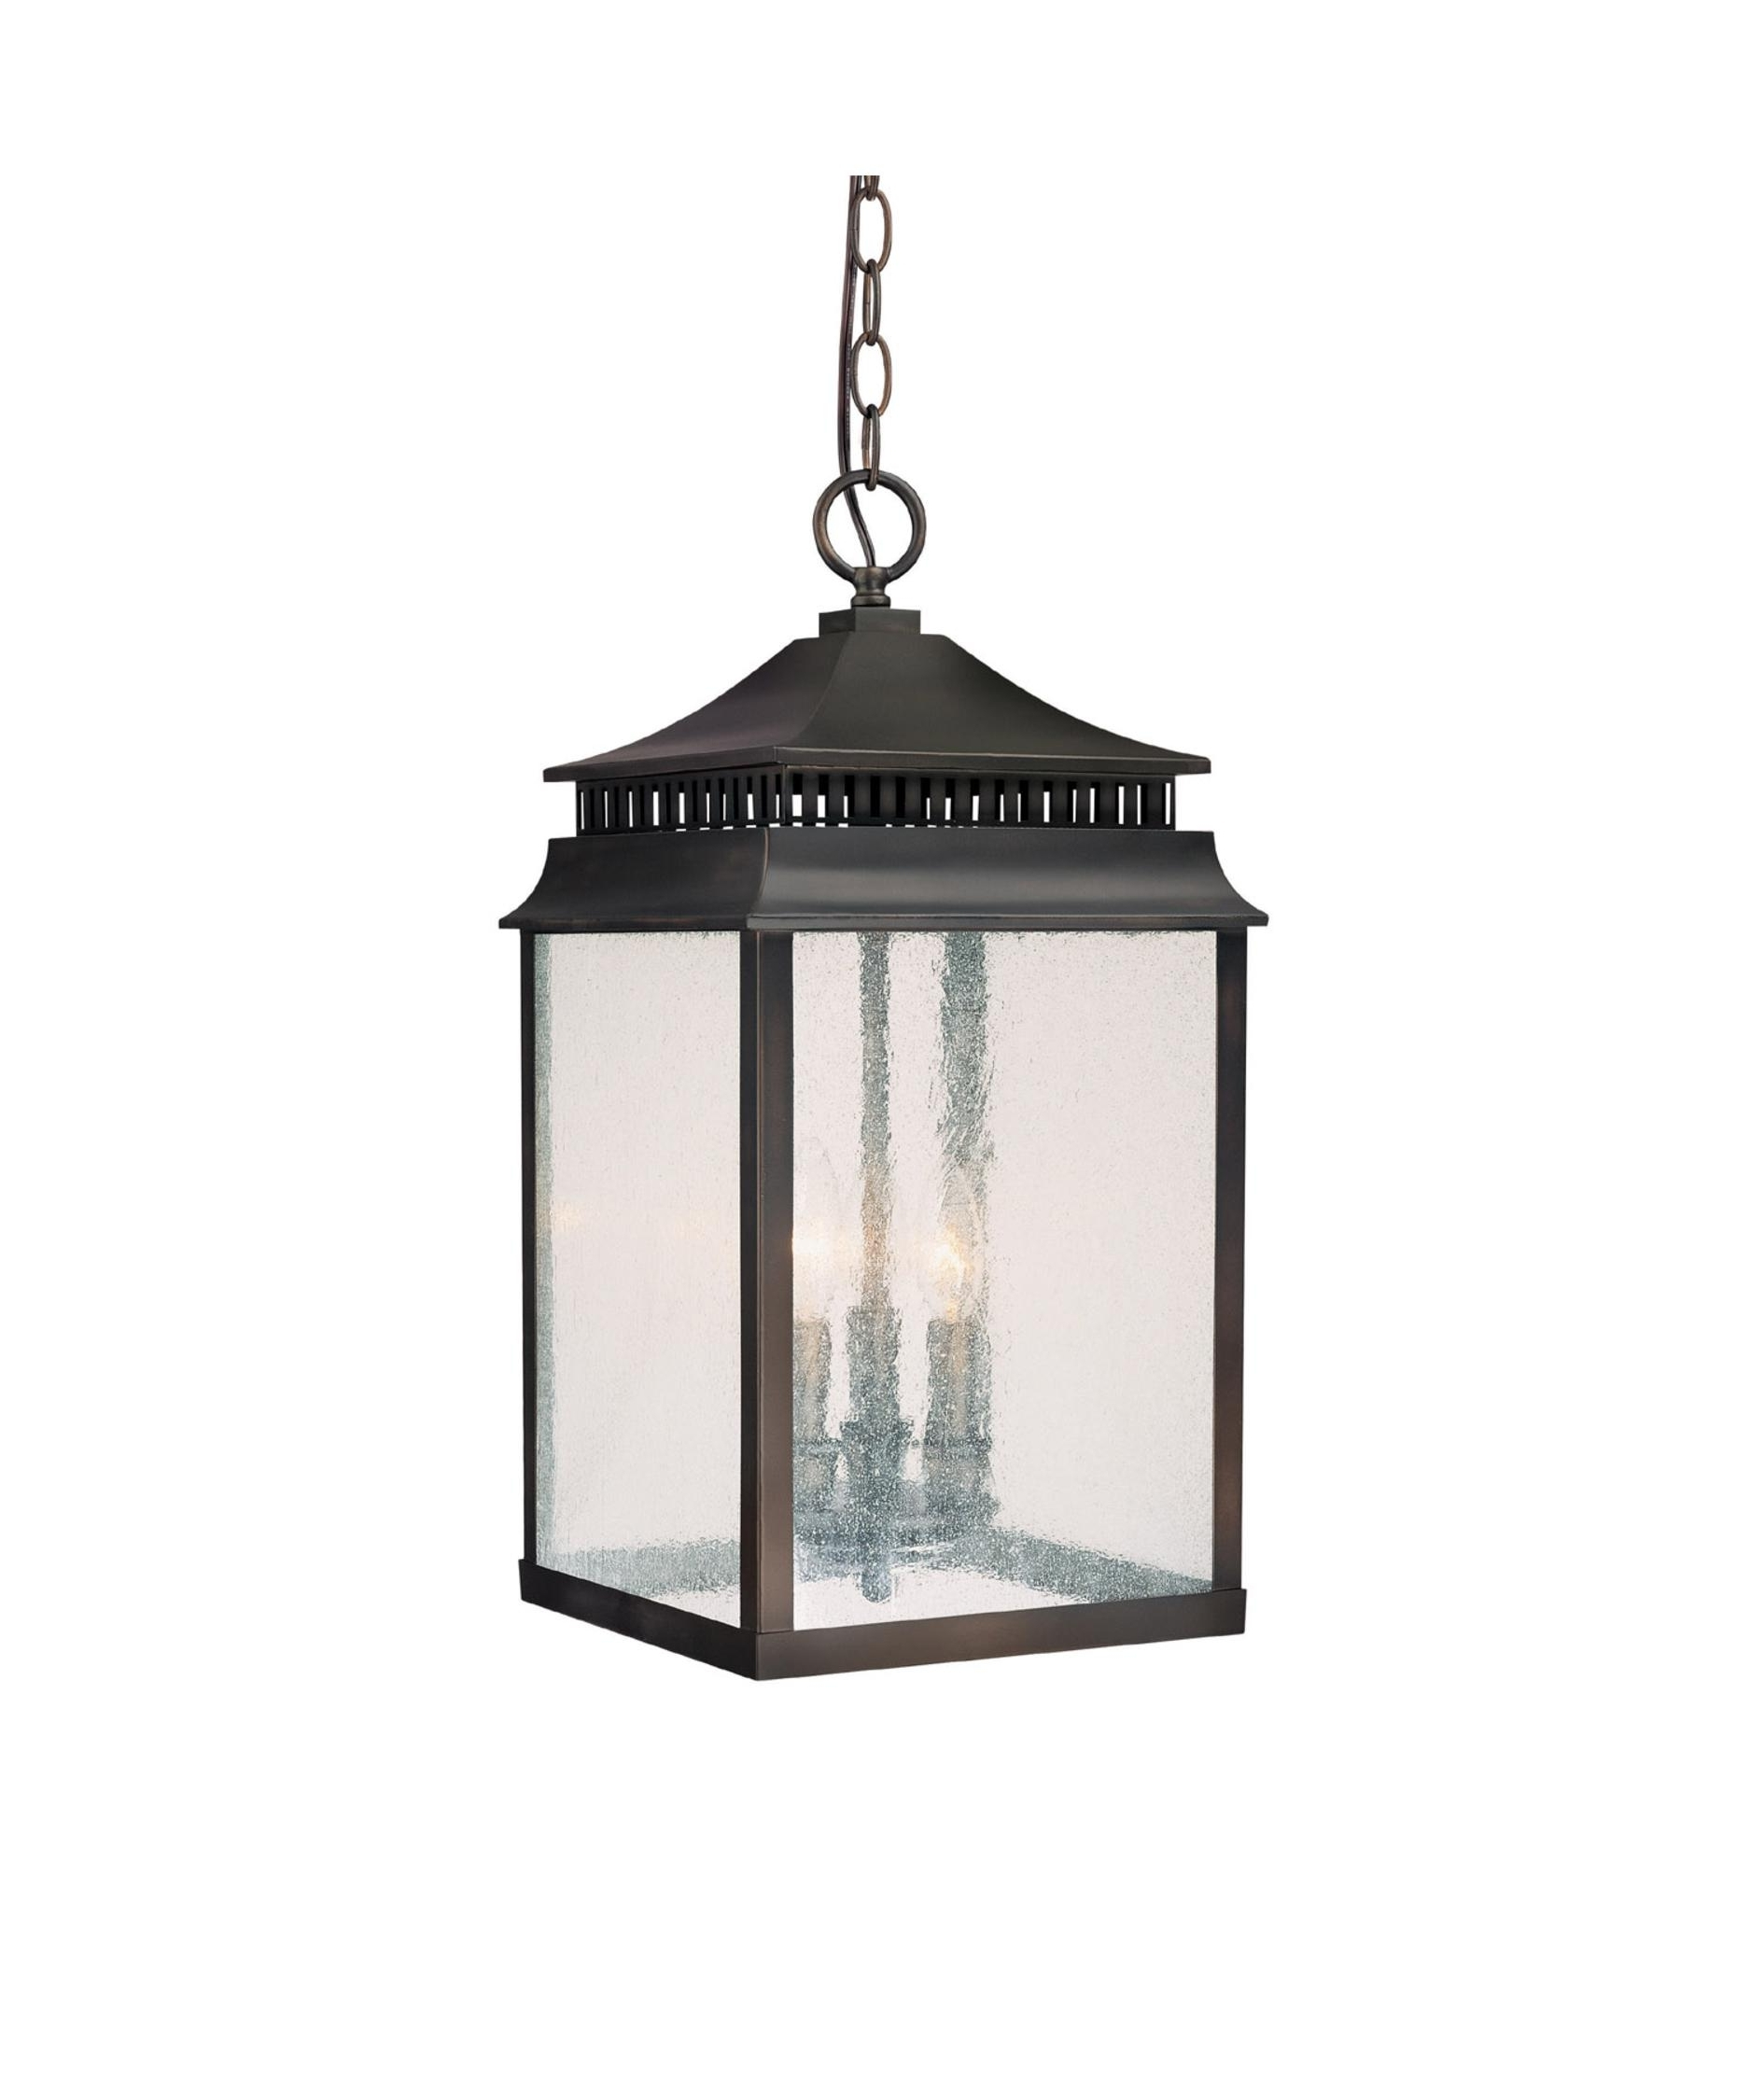 Outdoor Hanging Lantern Lights In Most Recent Capital Lighting 9116 Sutter Creek 10 Inch Wide 3 Light Outdoor (View 9 of 20)